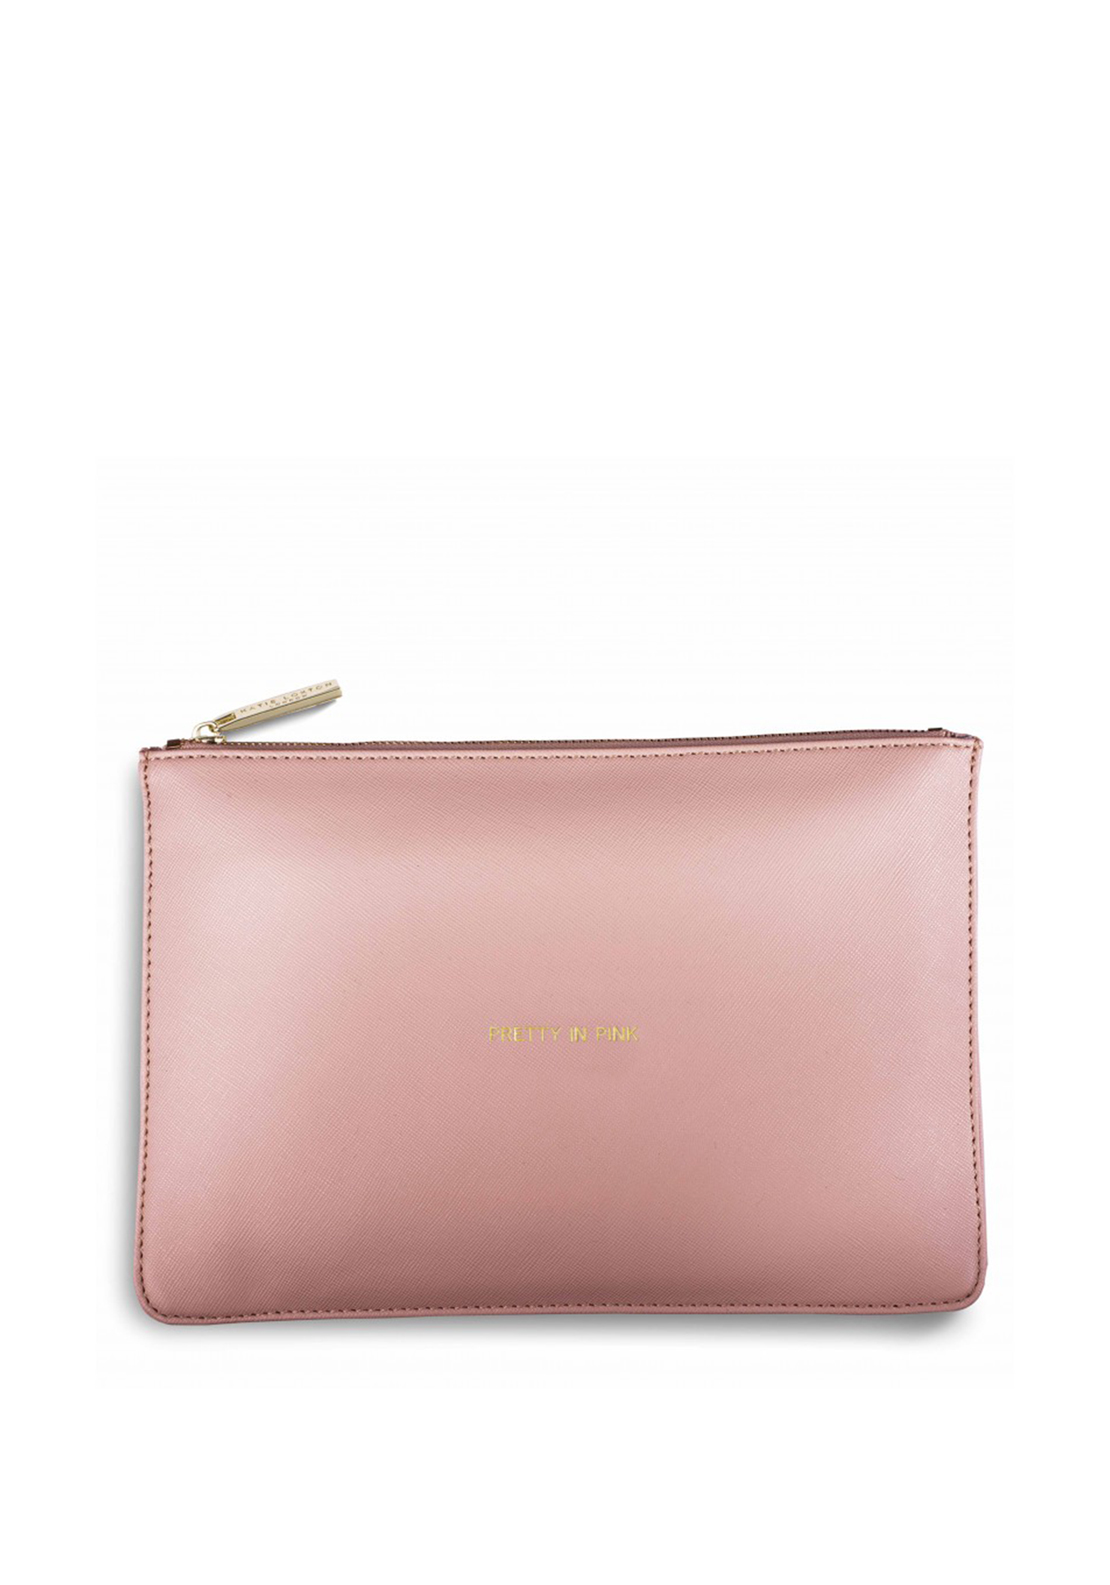 Katie Loxton Pretty In Pink Pouch Bag, Pink